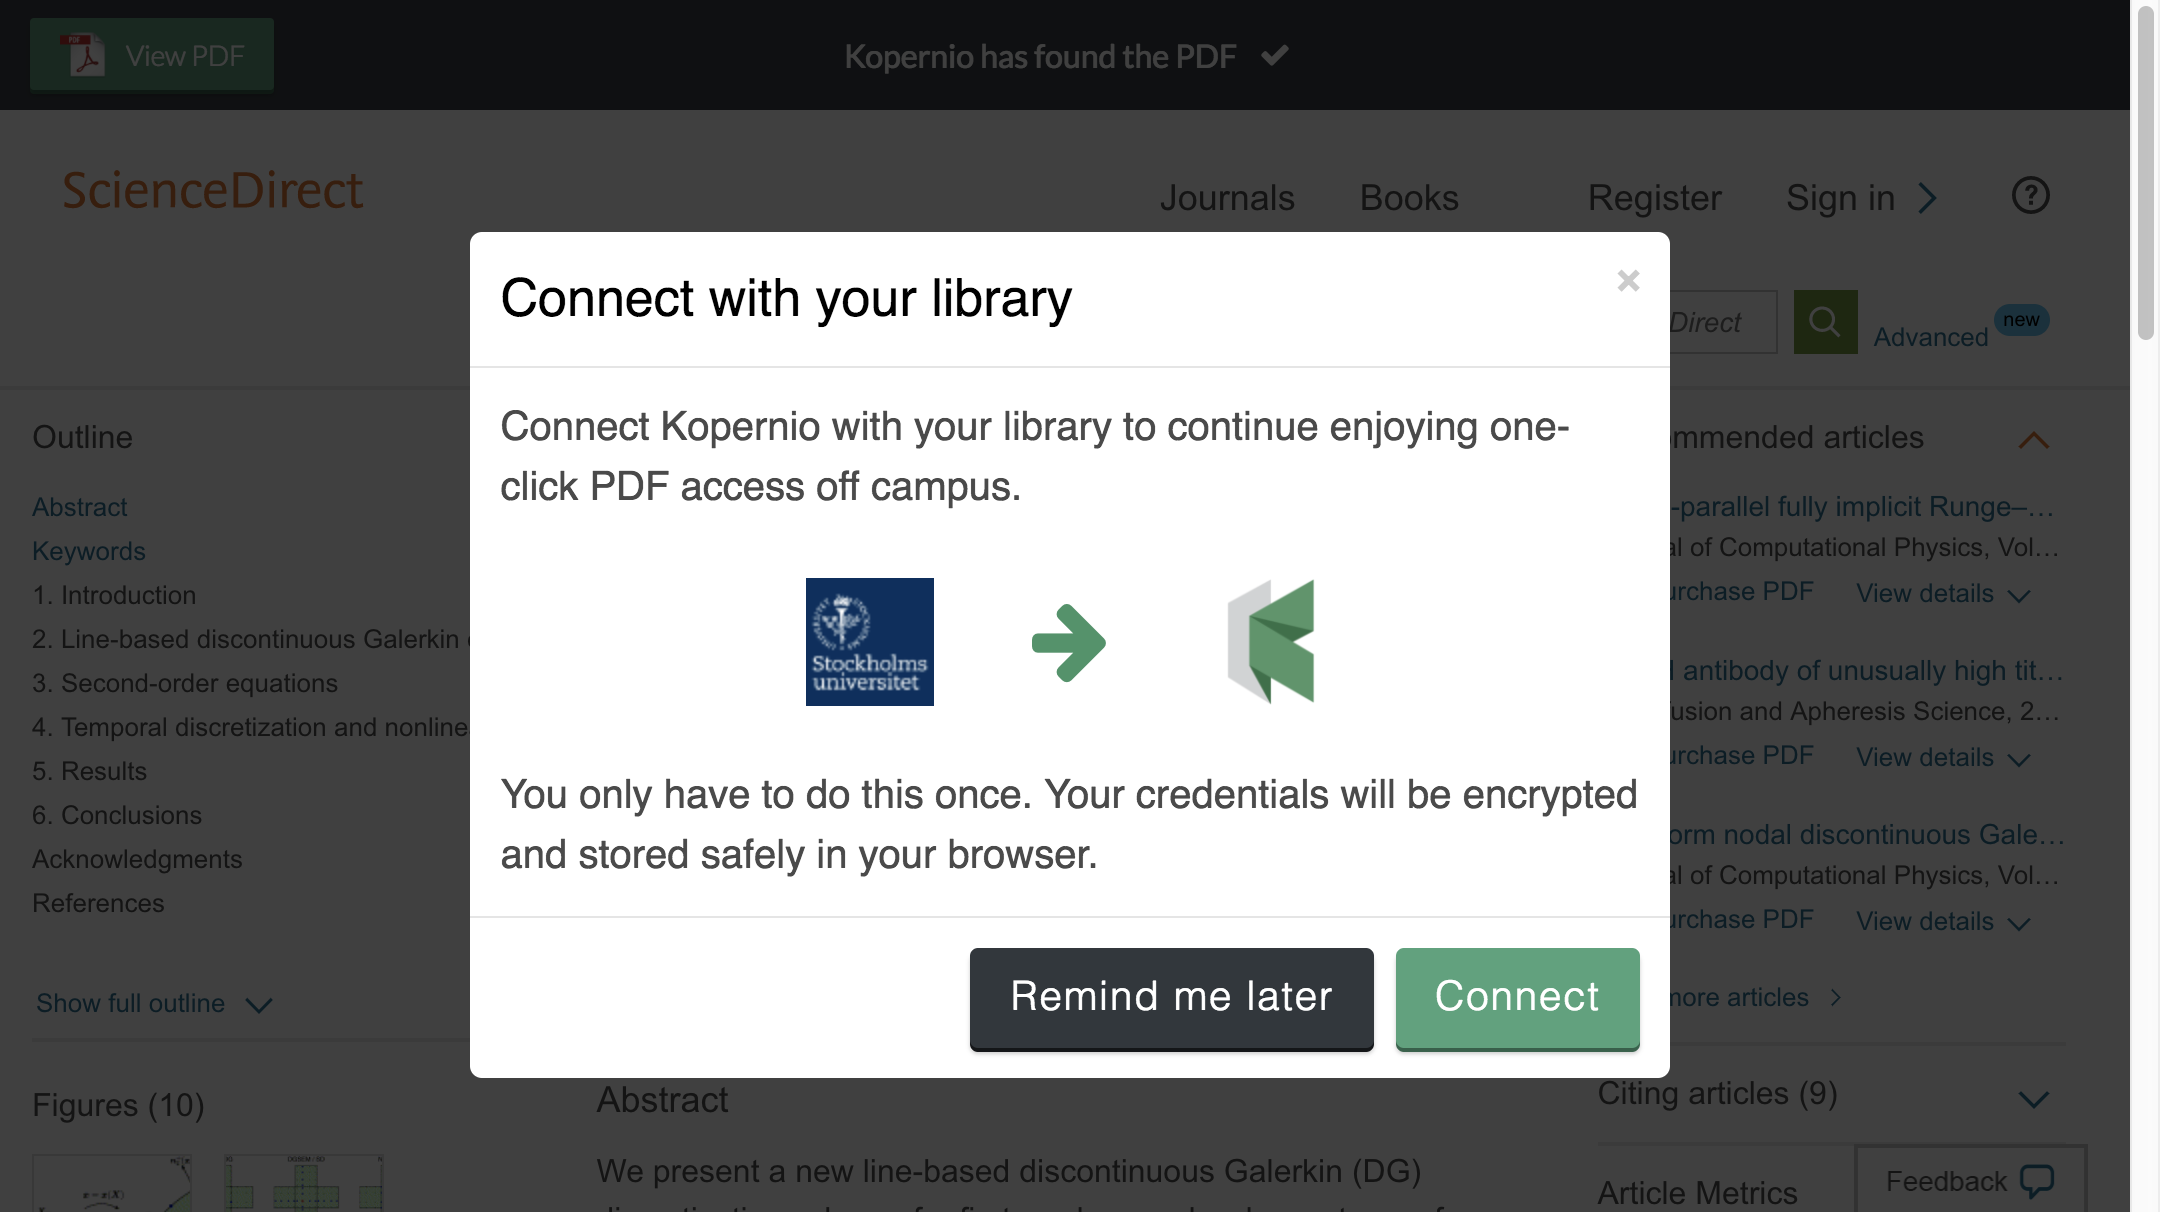 Connect to library prompt for off-campus access to Stockholm University e-resources.